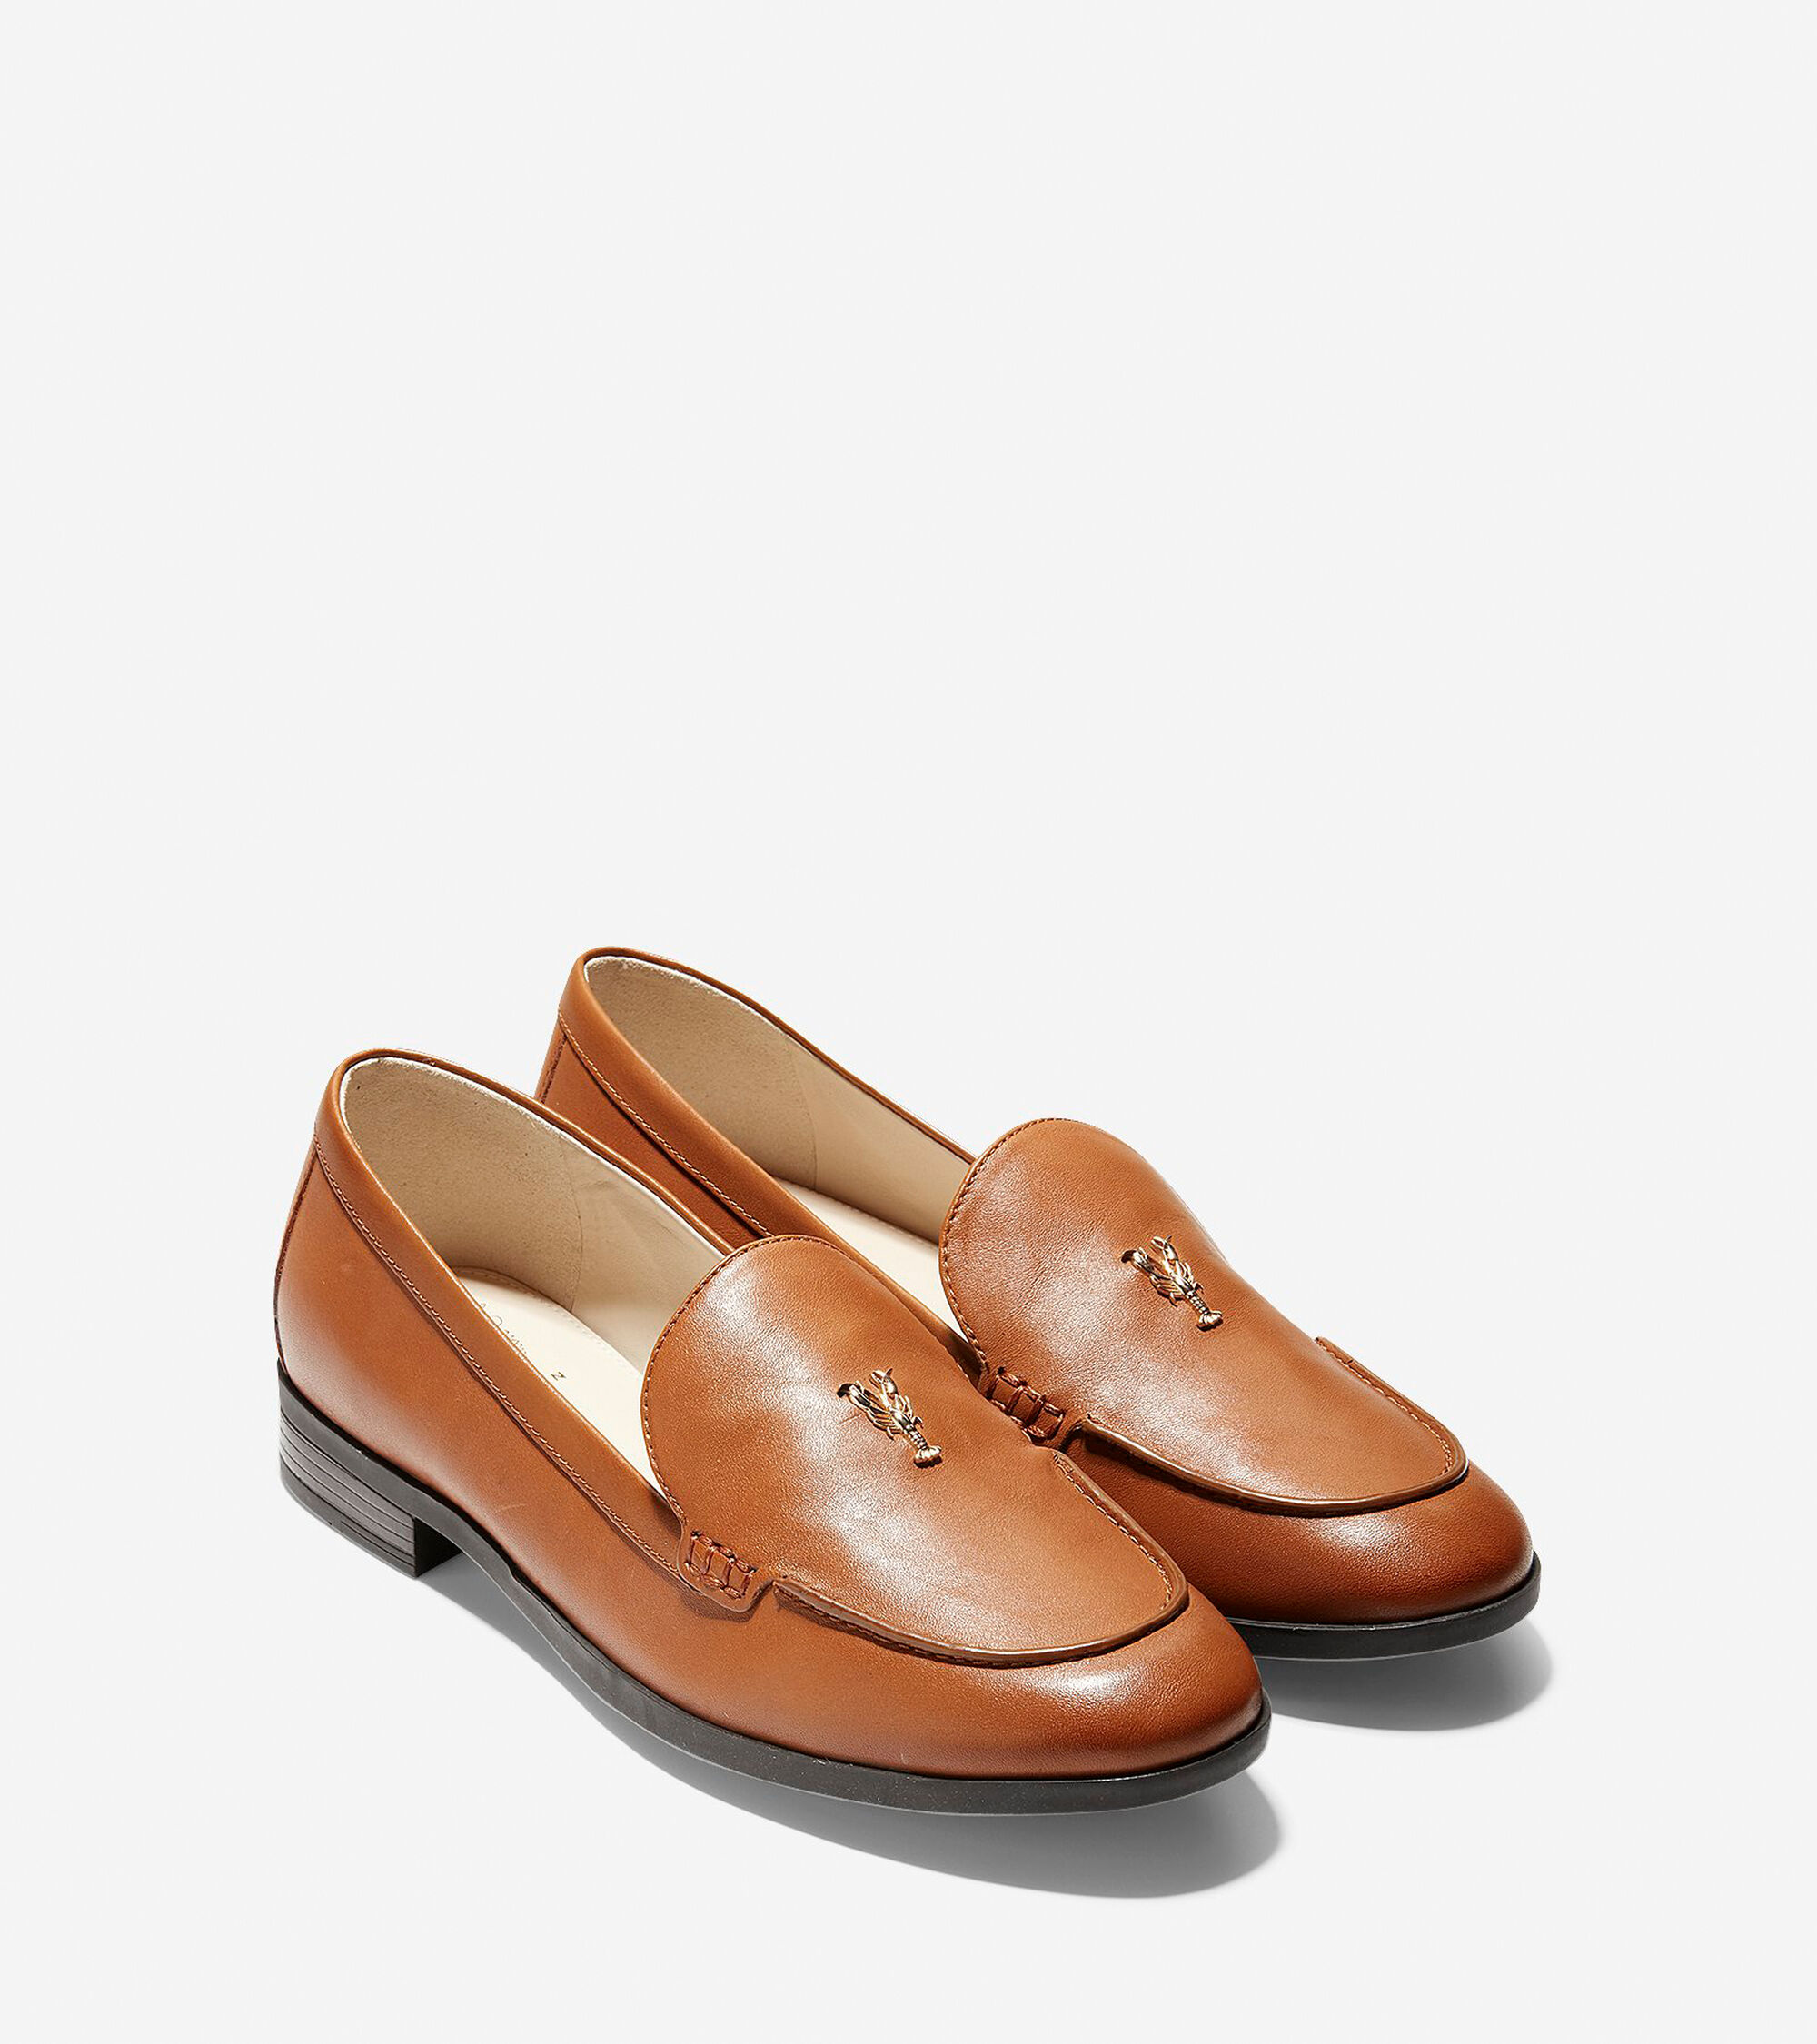 078891e0e04 ... Women s Pinch Lobster Loafer · Women s Pinch Lobster Loafer.  COLEHAAN